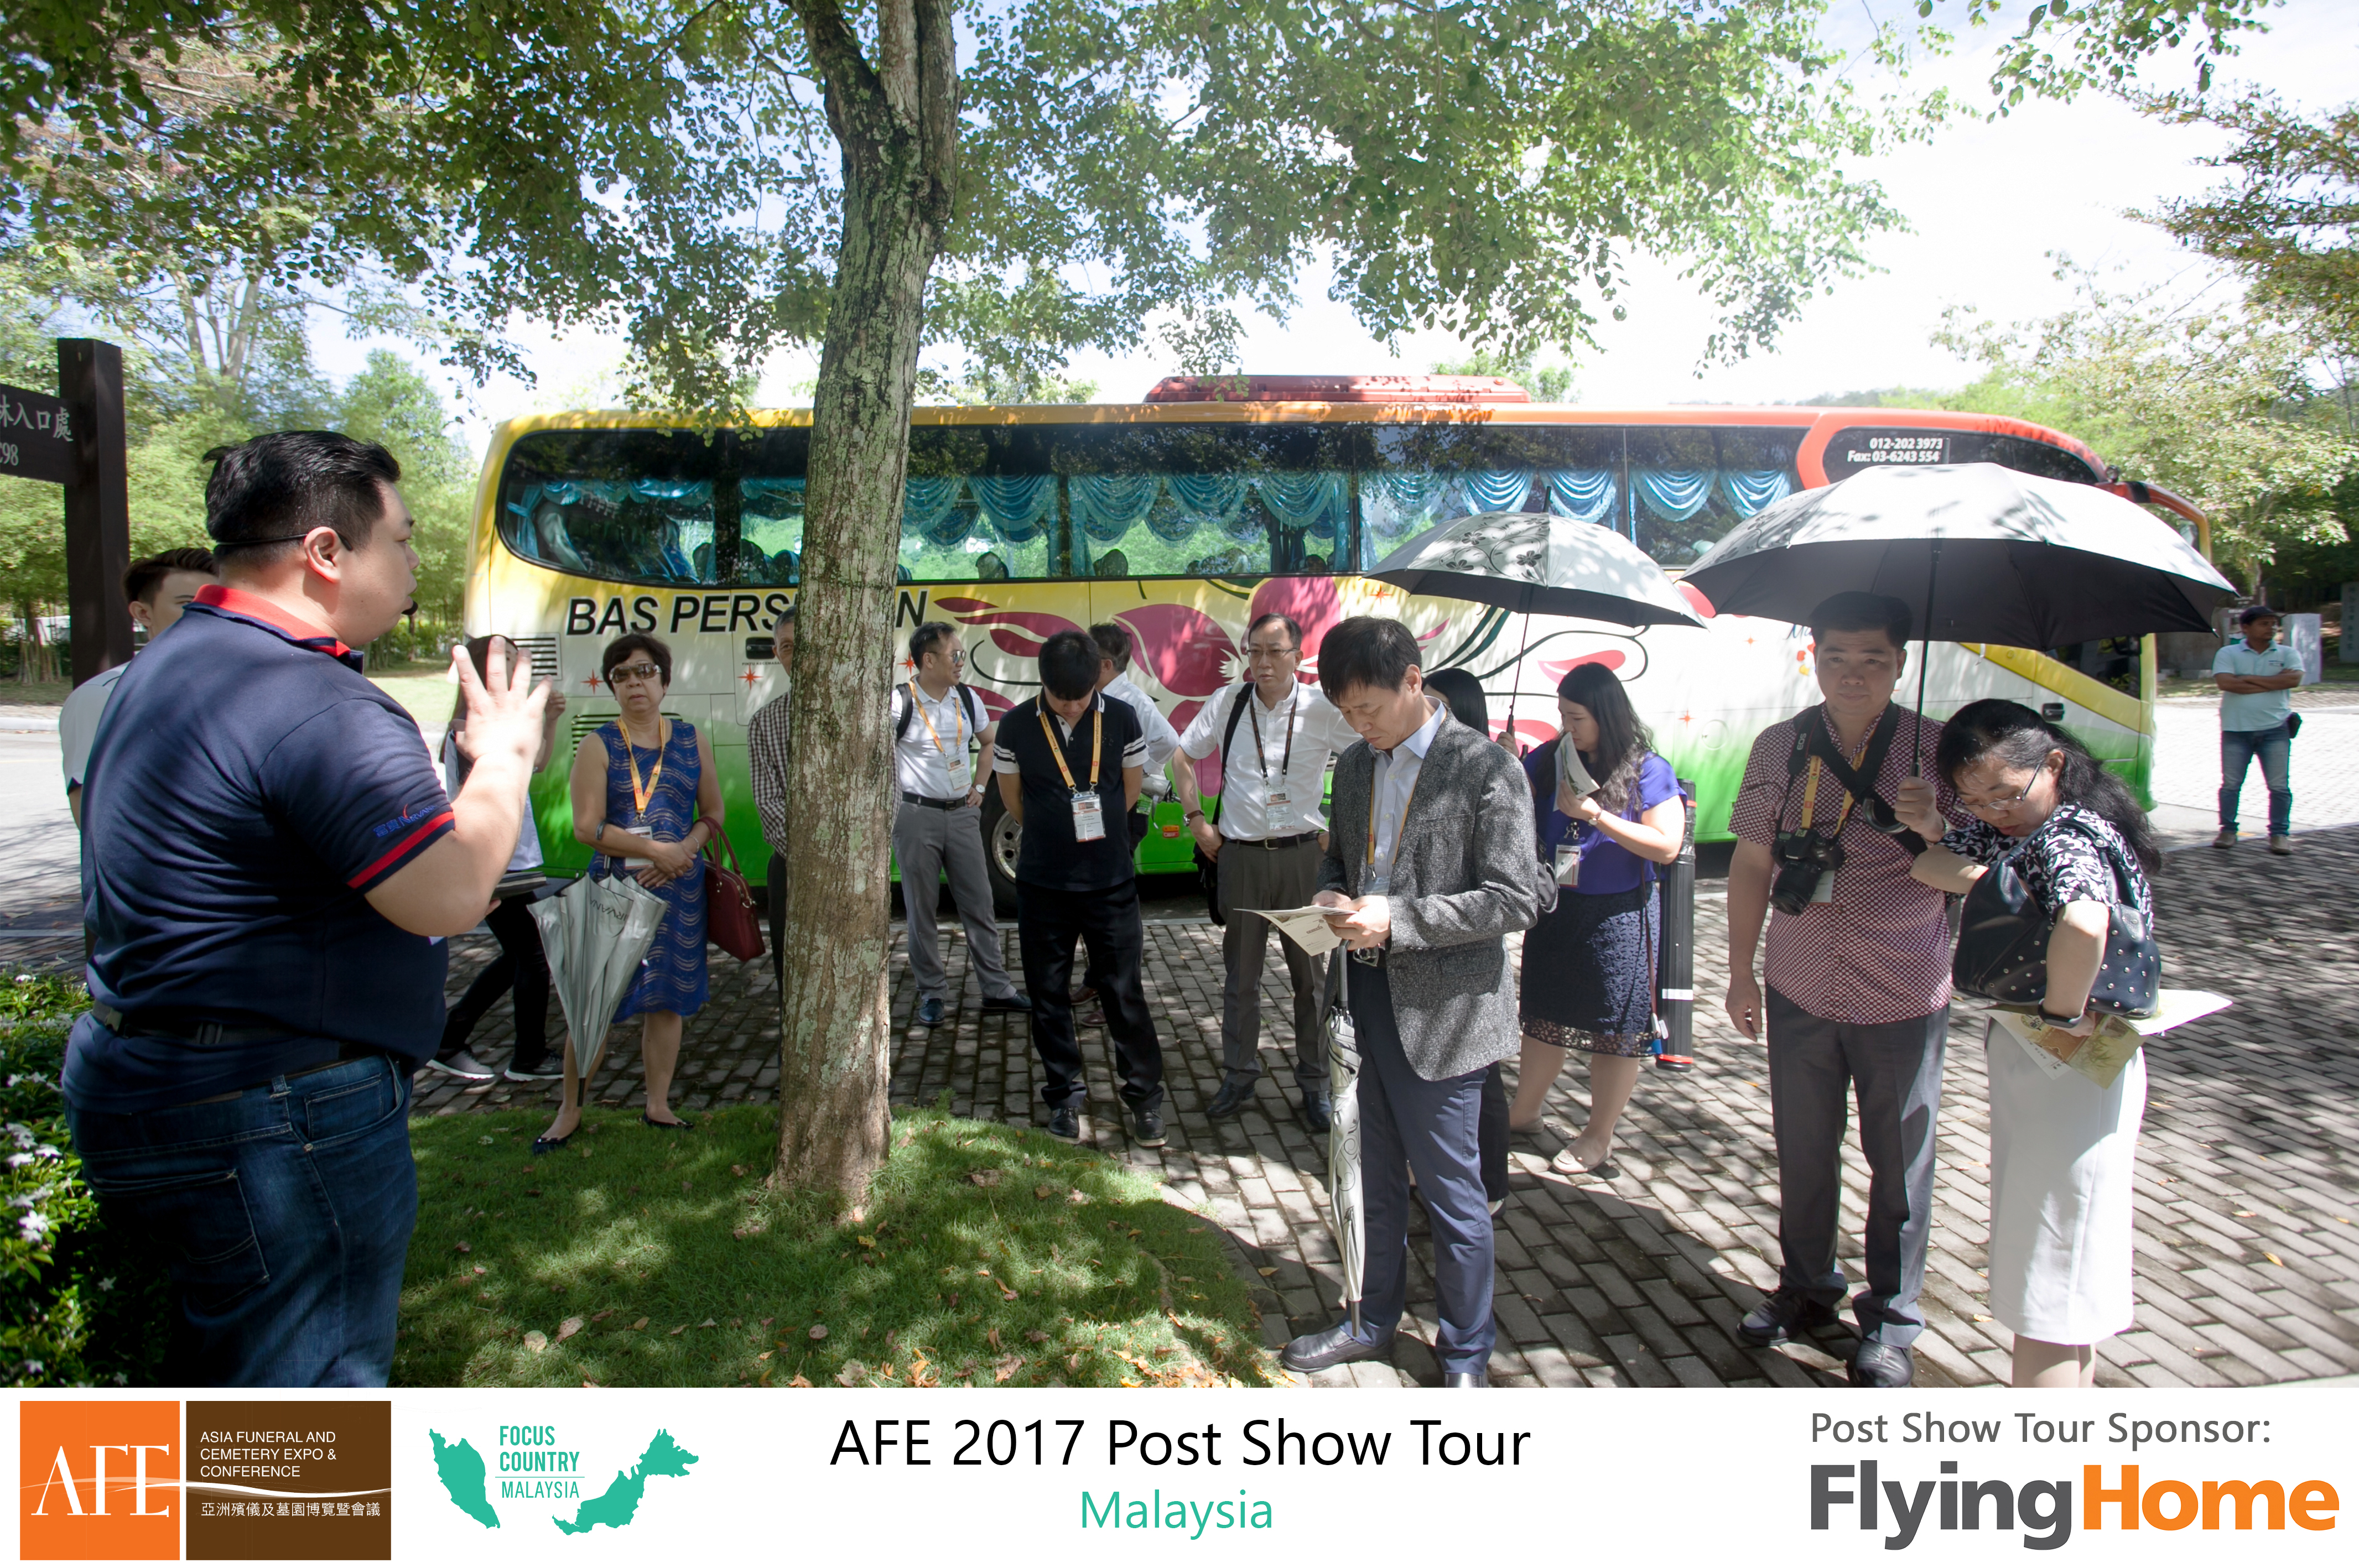 AFE Post Show Tour 2017 Day 2 - 48